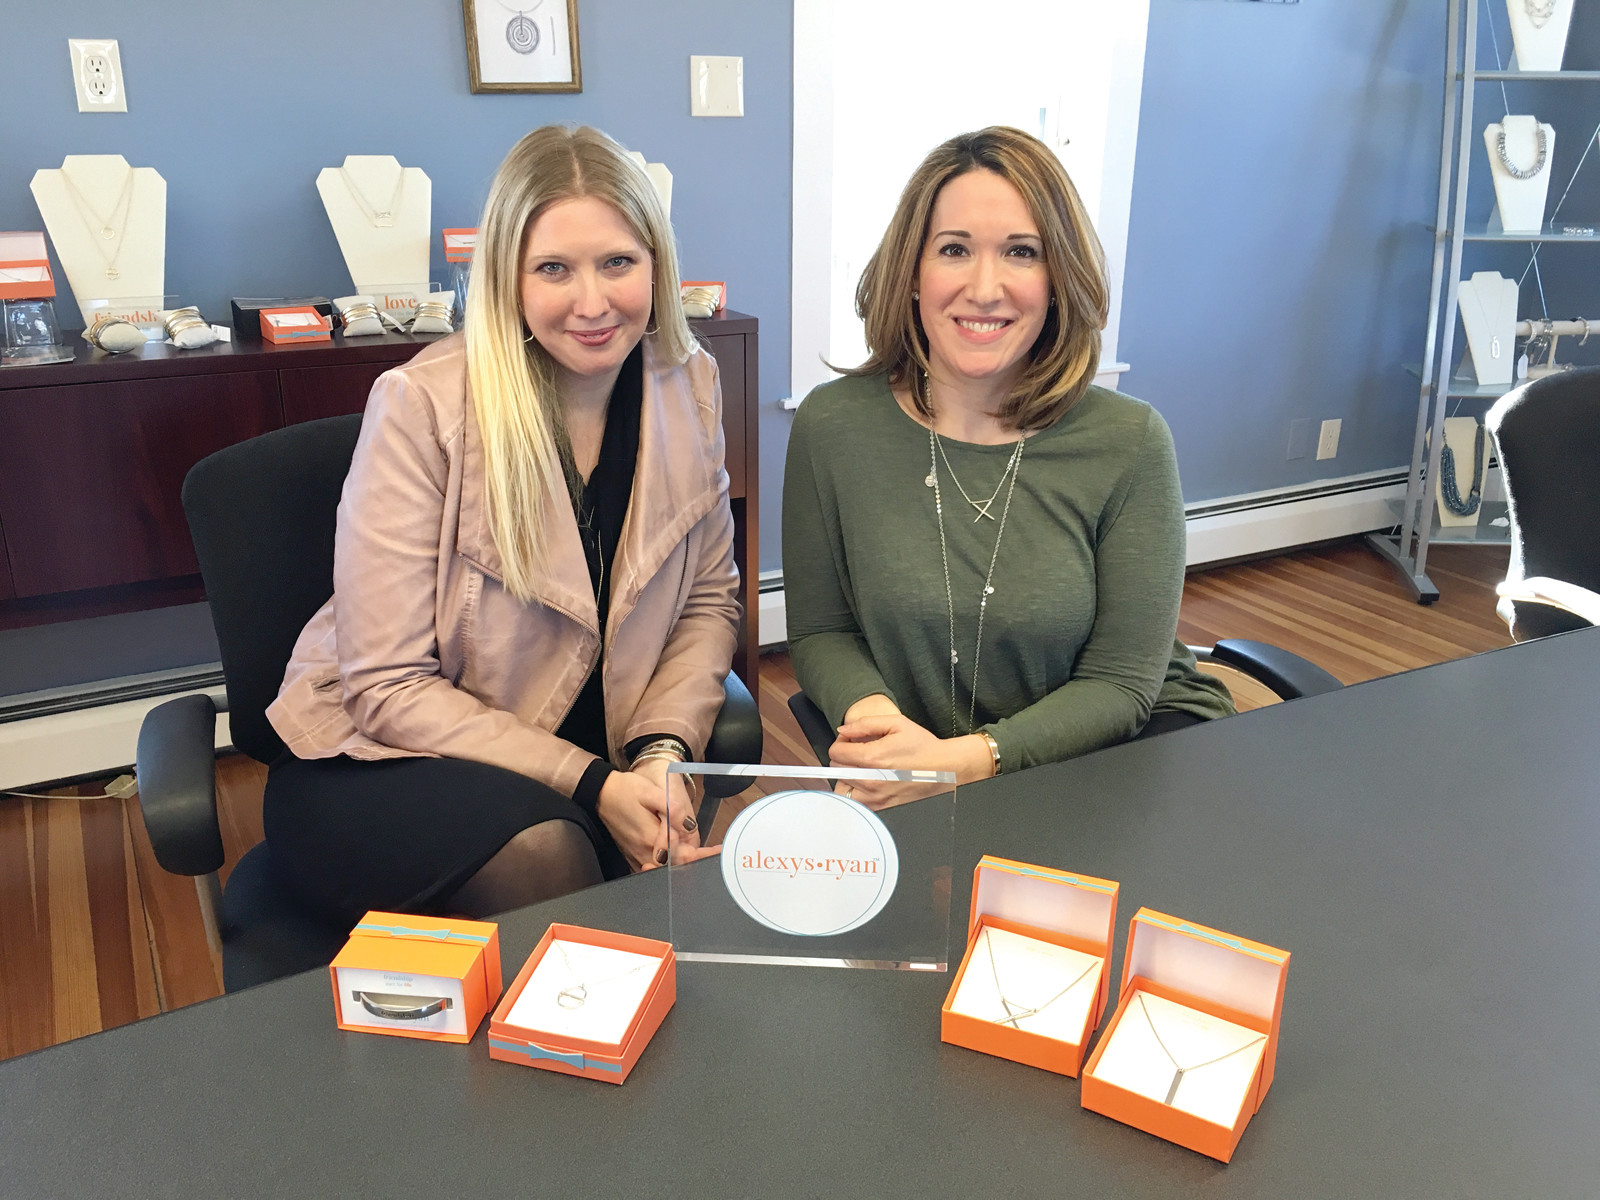 SISTERS IN LAW, BUSINESS PARTNERS: Alexys Garrepy of Warwick and Jennifer Brousseau of Cumberland are the creators of Alexys Ryan, LDC Inc.'s first original brand. Here, they display and are wearing some pieces of the jewelry line.